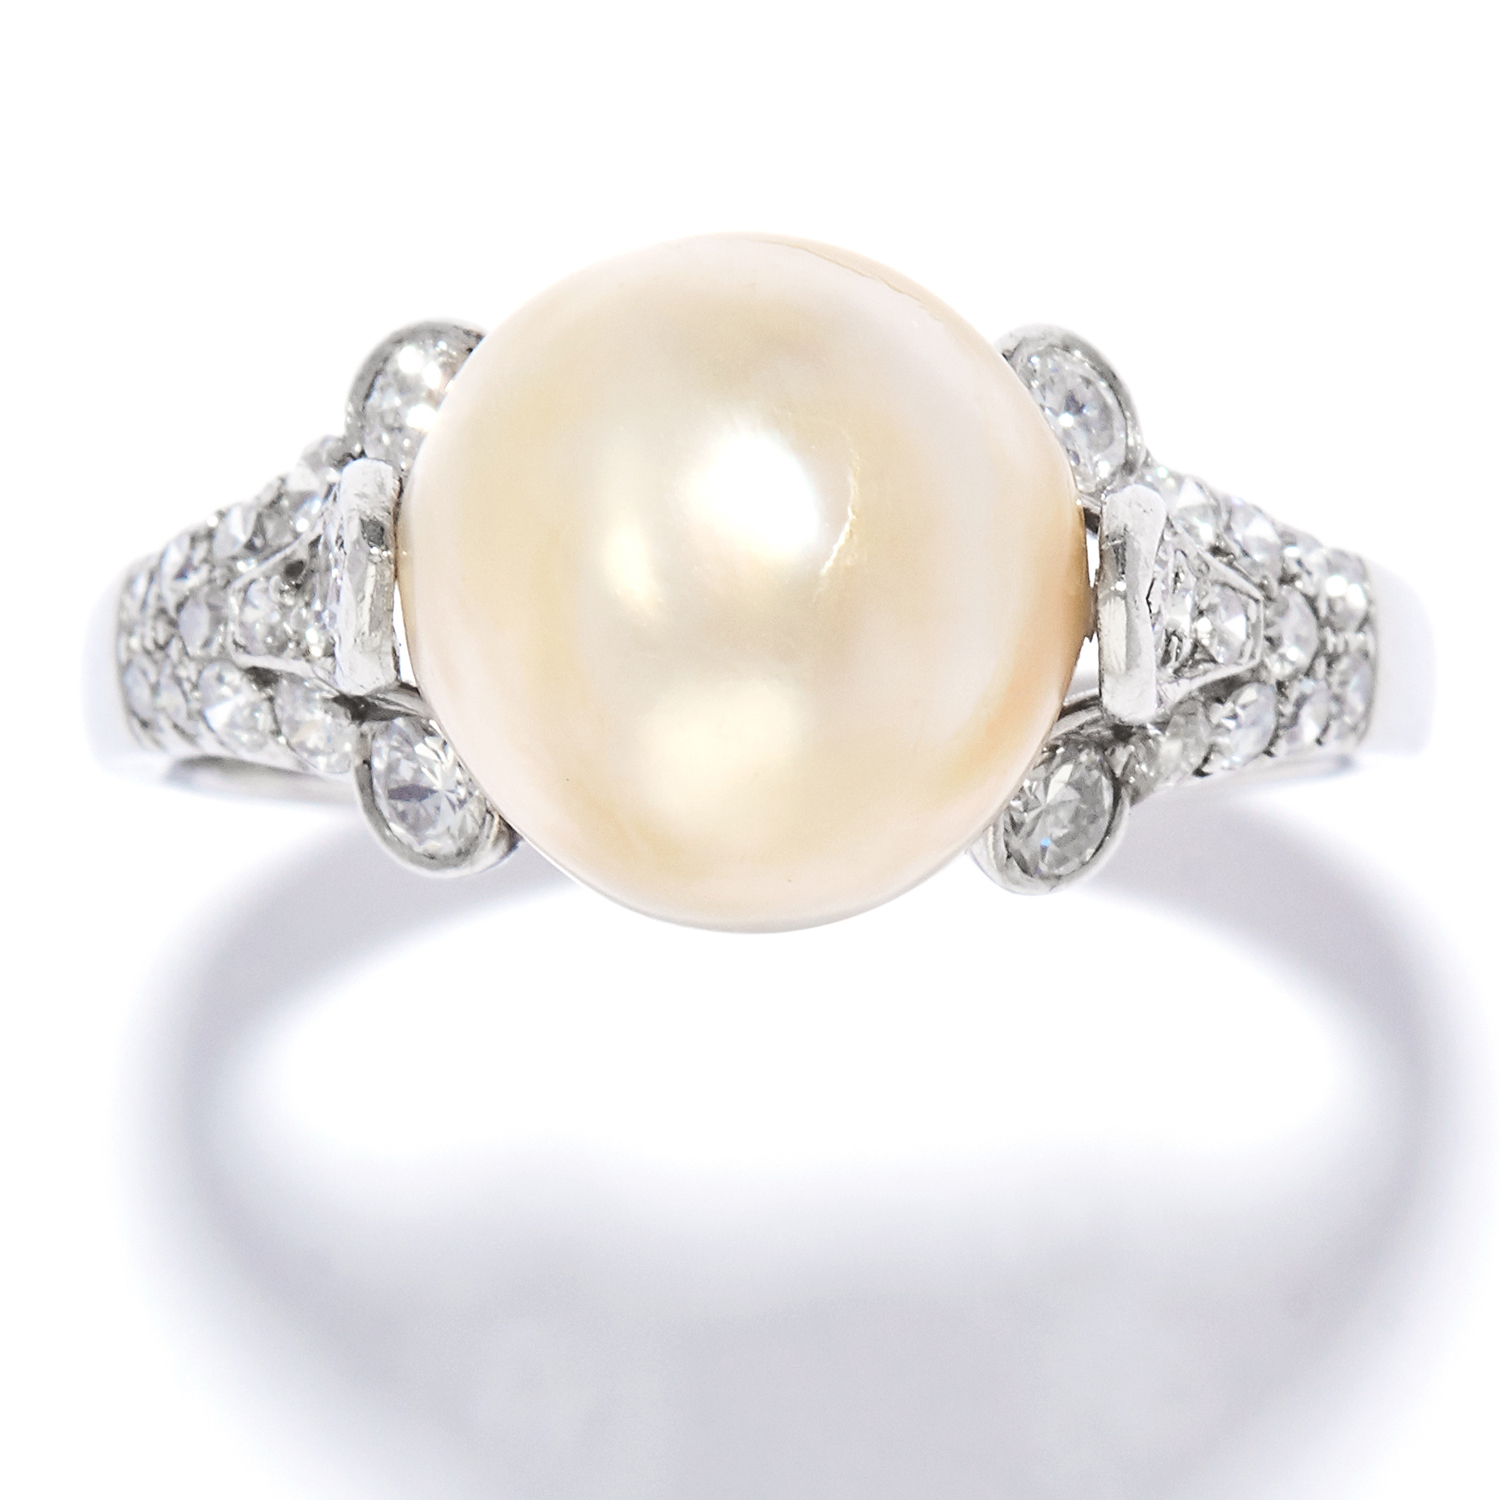 NATURAL PEARL AND DIAMOND RING, BULGARI in platinum, the 10.3mm natural pearl between scrolling